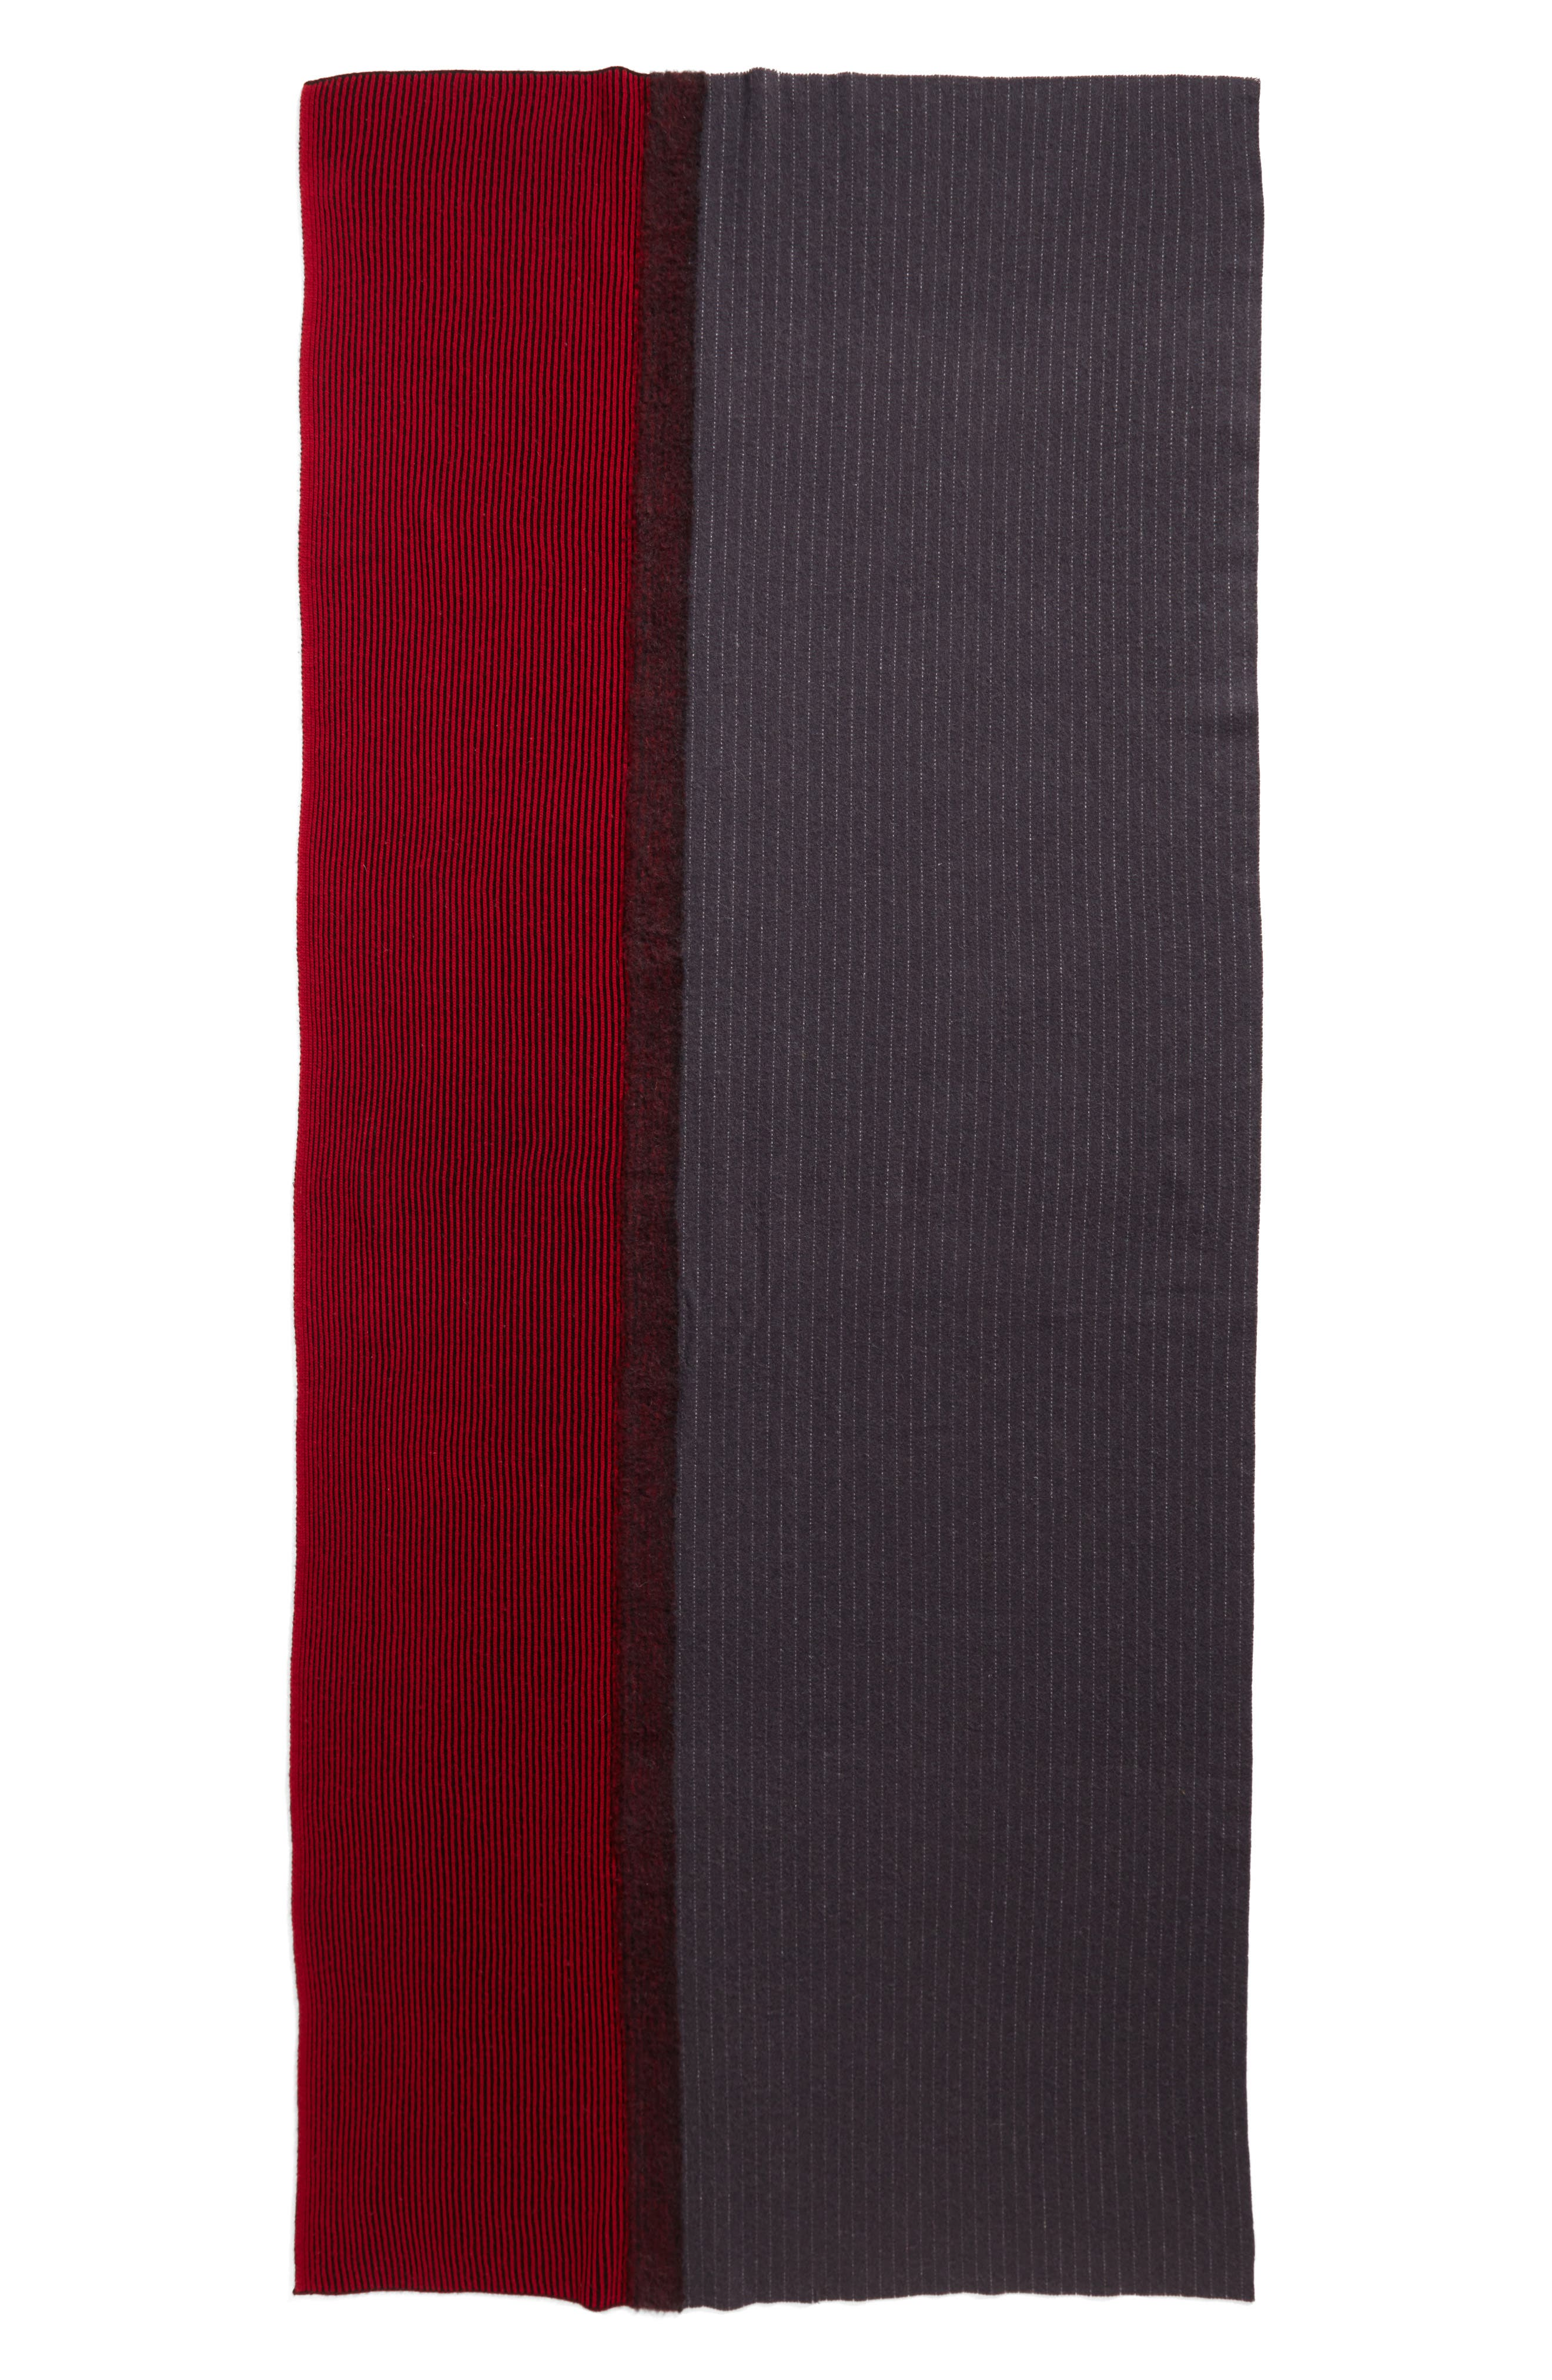 Pinstripe Wool & Cashmere Scarf,                             Alternate thumbnail 3, color,                             400